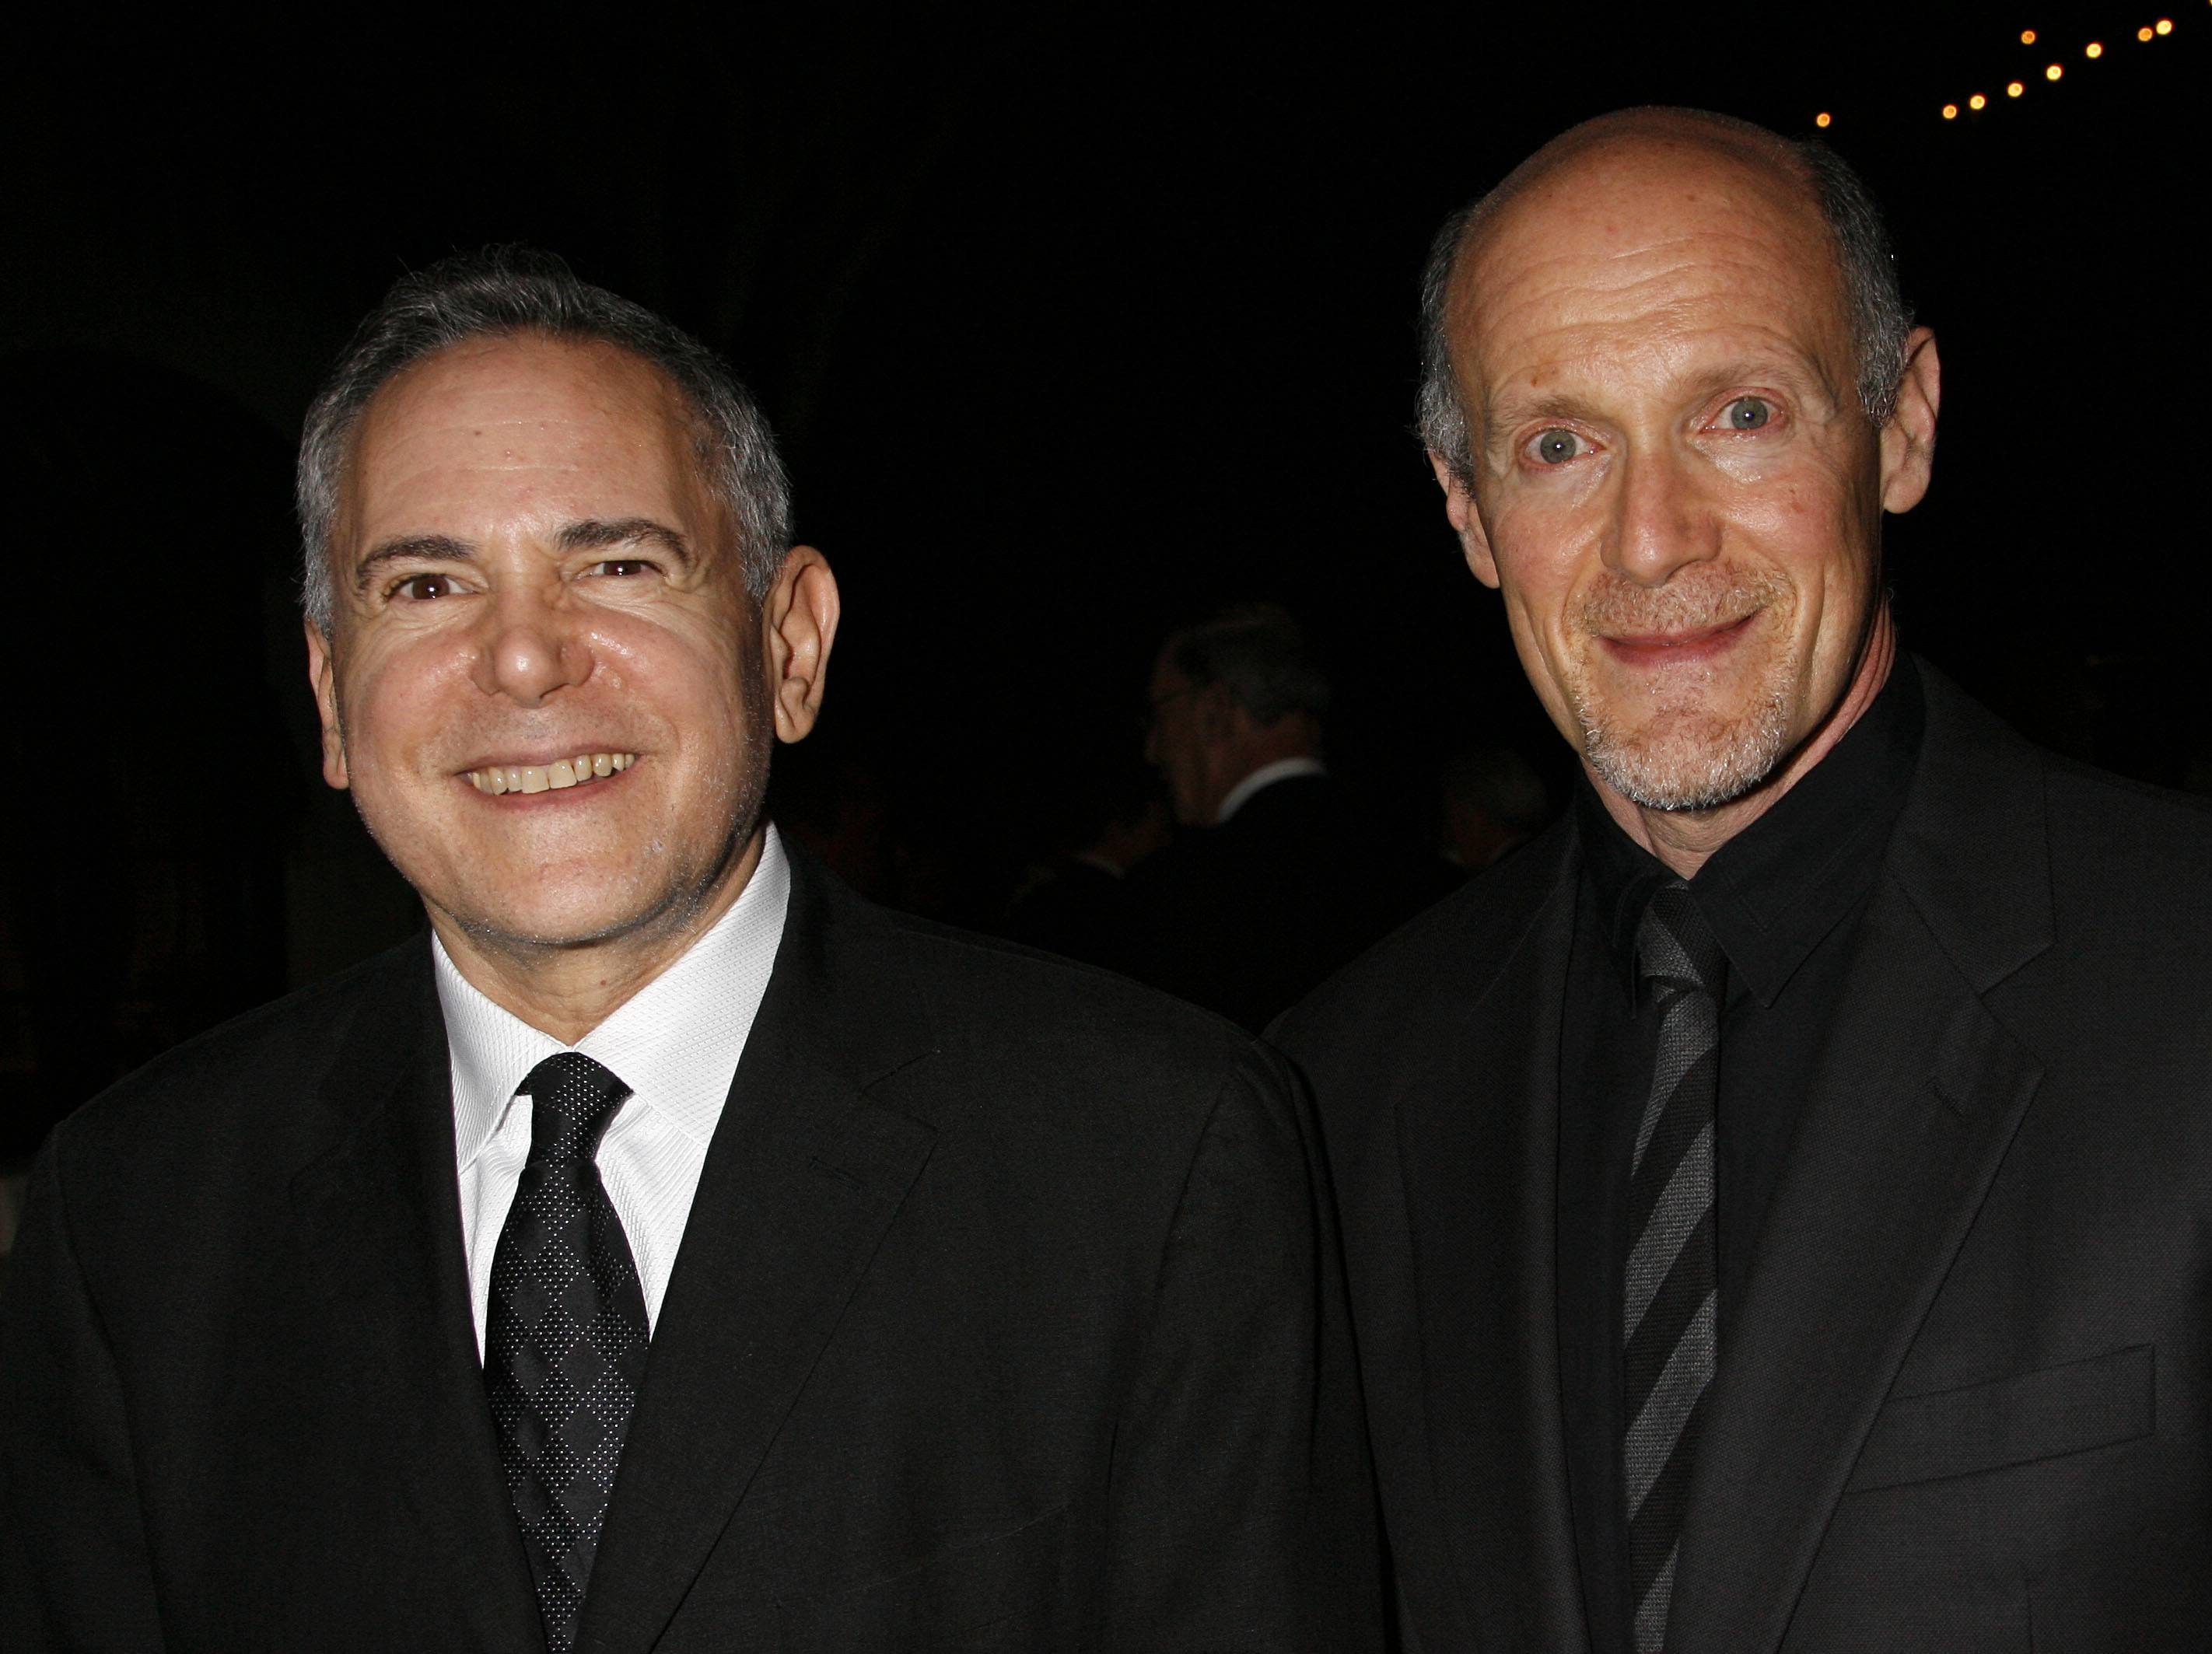 Craig Zadan, left, and Neil Meron, the producers behind the last two Oscar telecasts, are coming back for a third time.